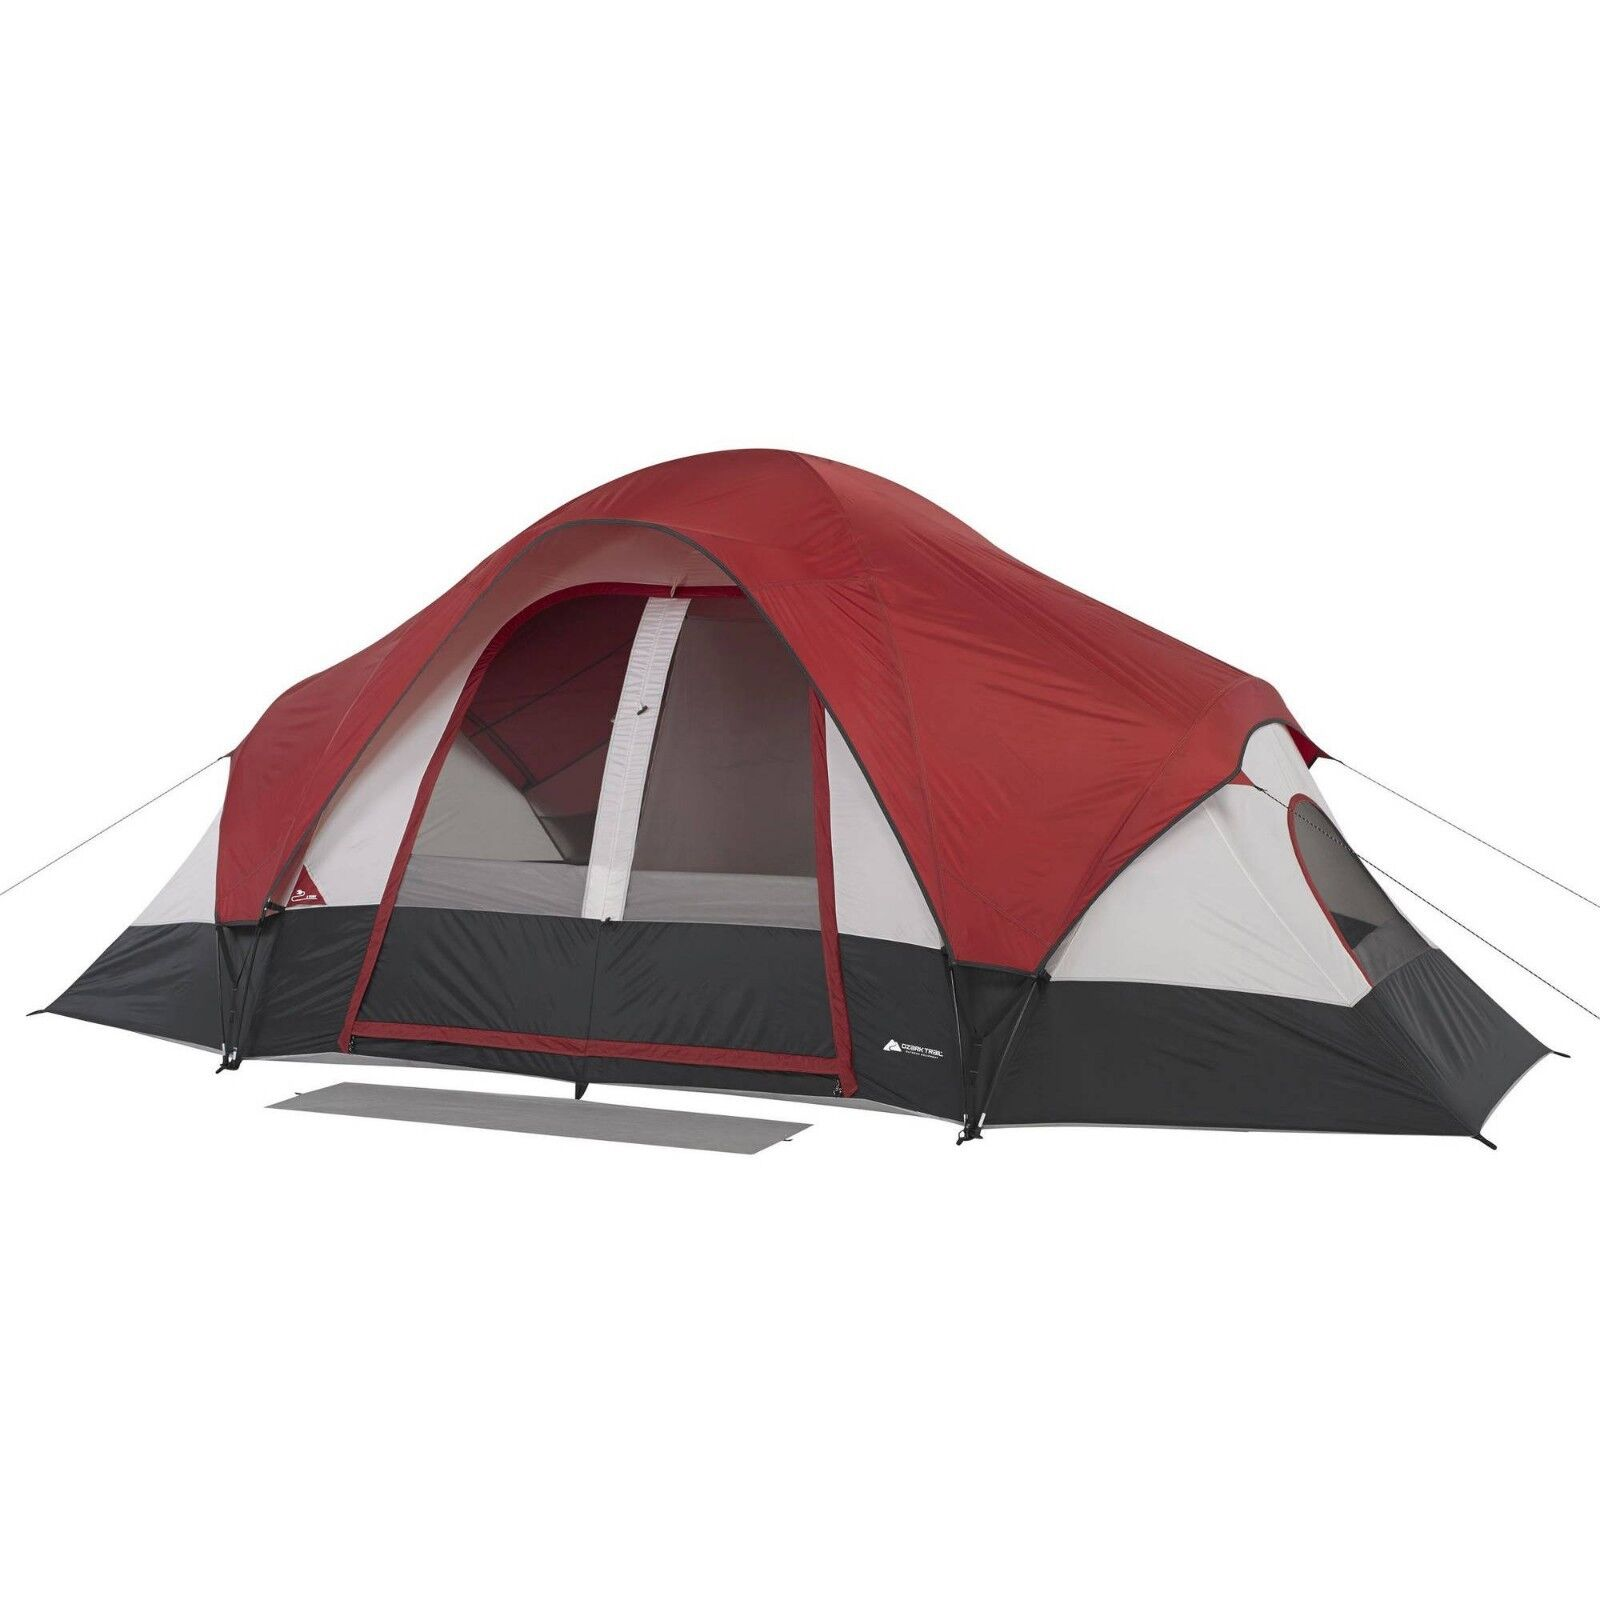 Ozark Trail 8 Person Cabin Tent Tent Tent 16 x 8 ft 2 Room Family Camping Outdoor c9f796